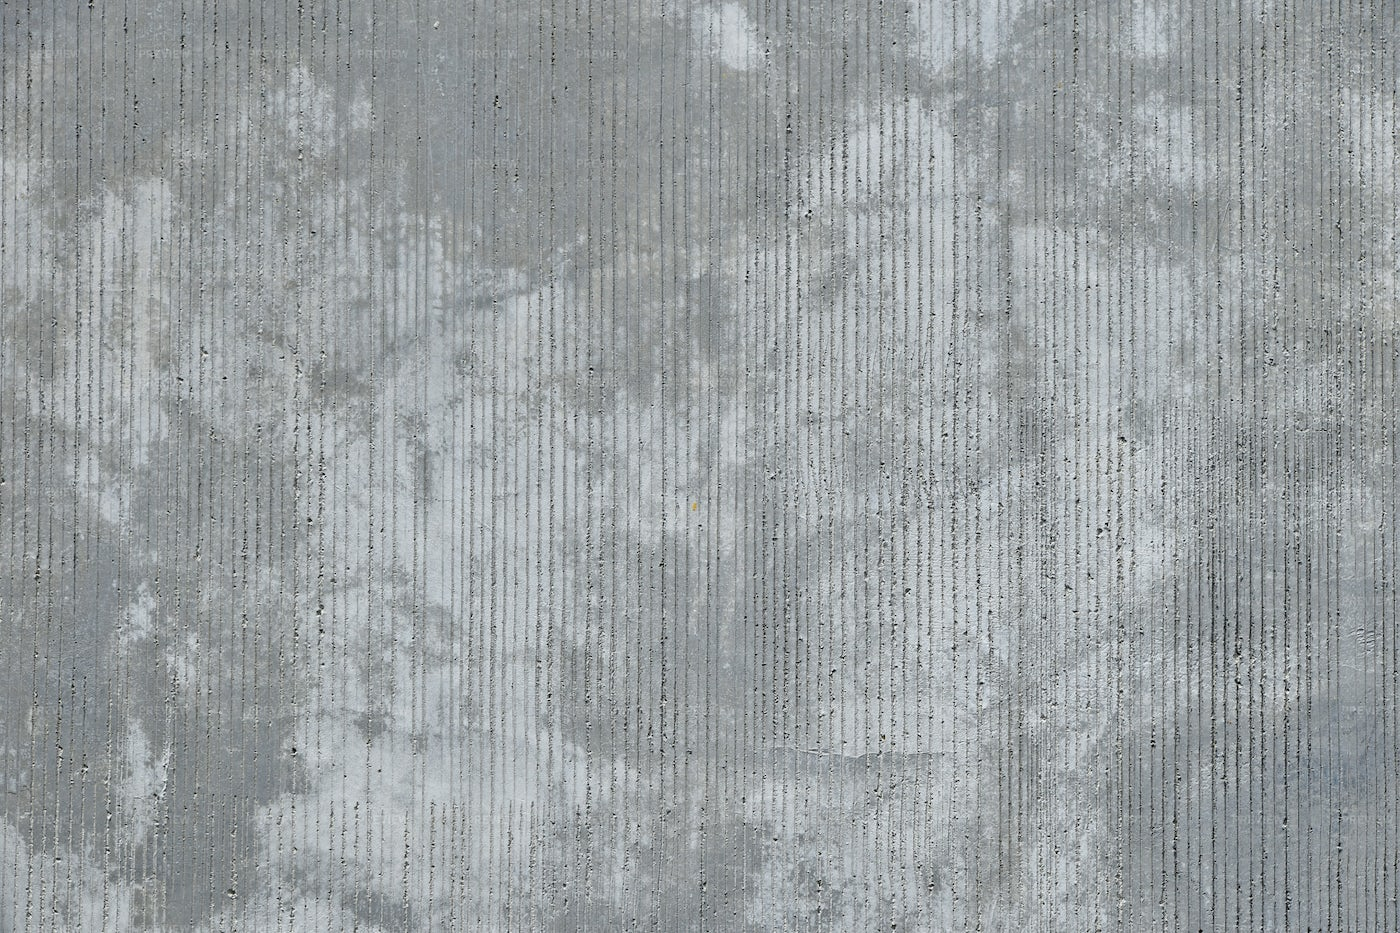 Grey Wall With Traces: Stock Photos